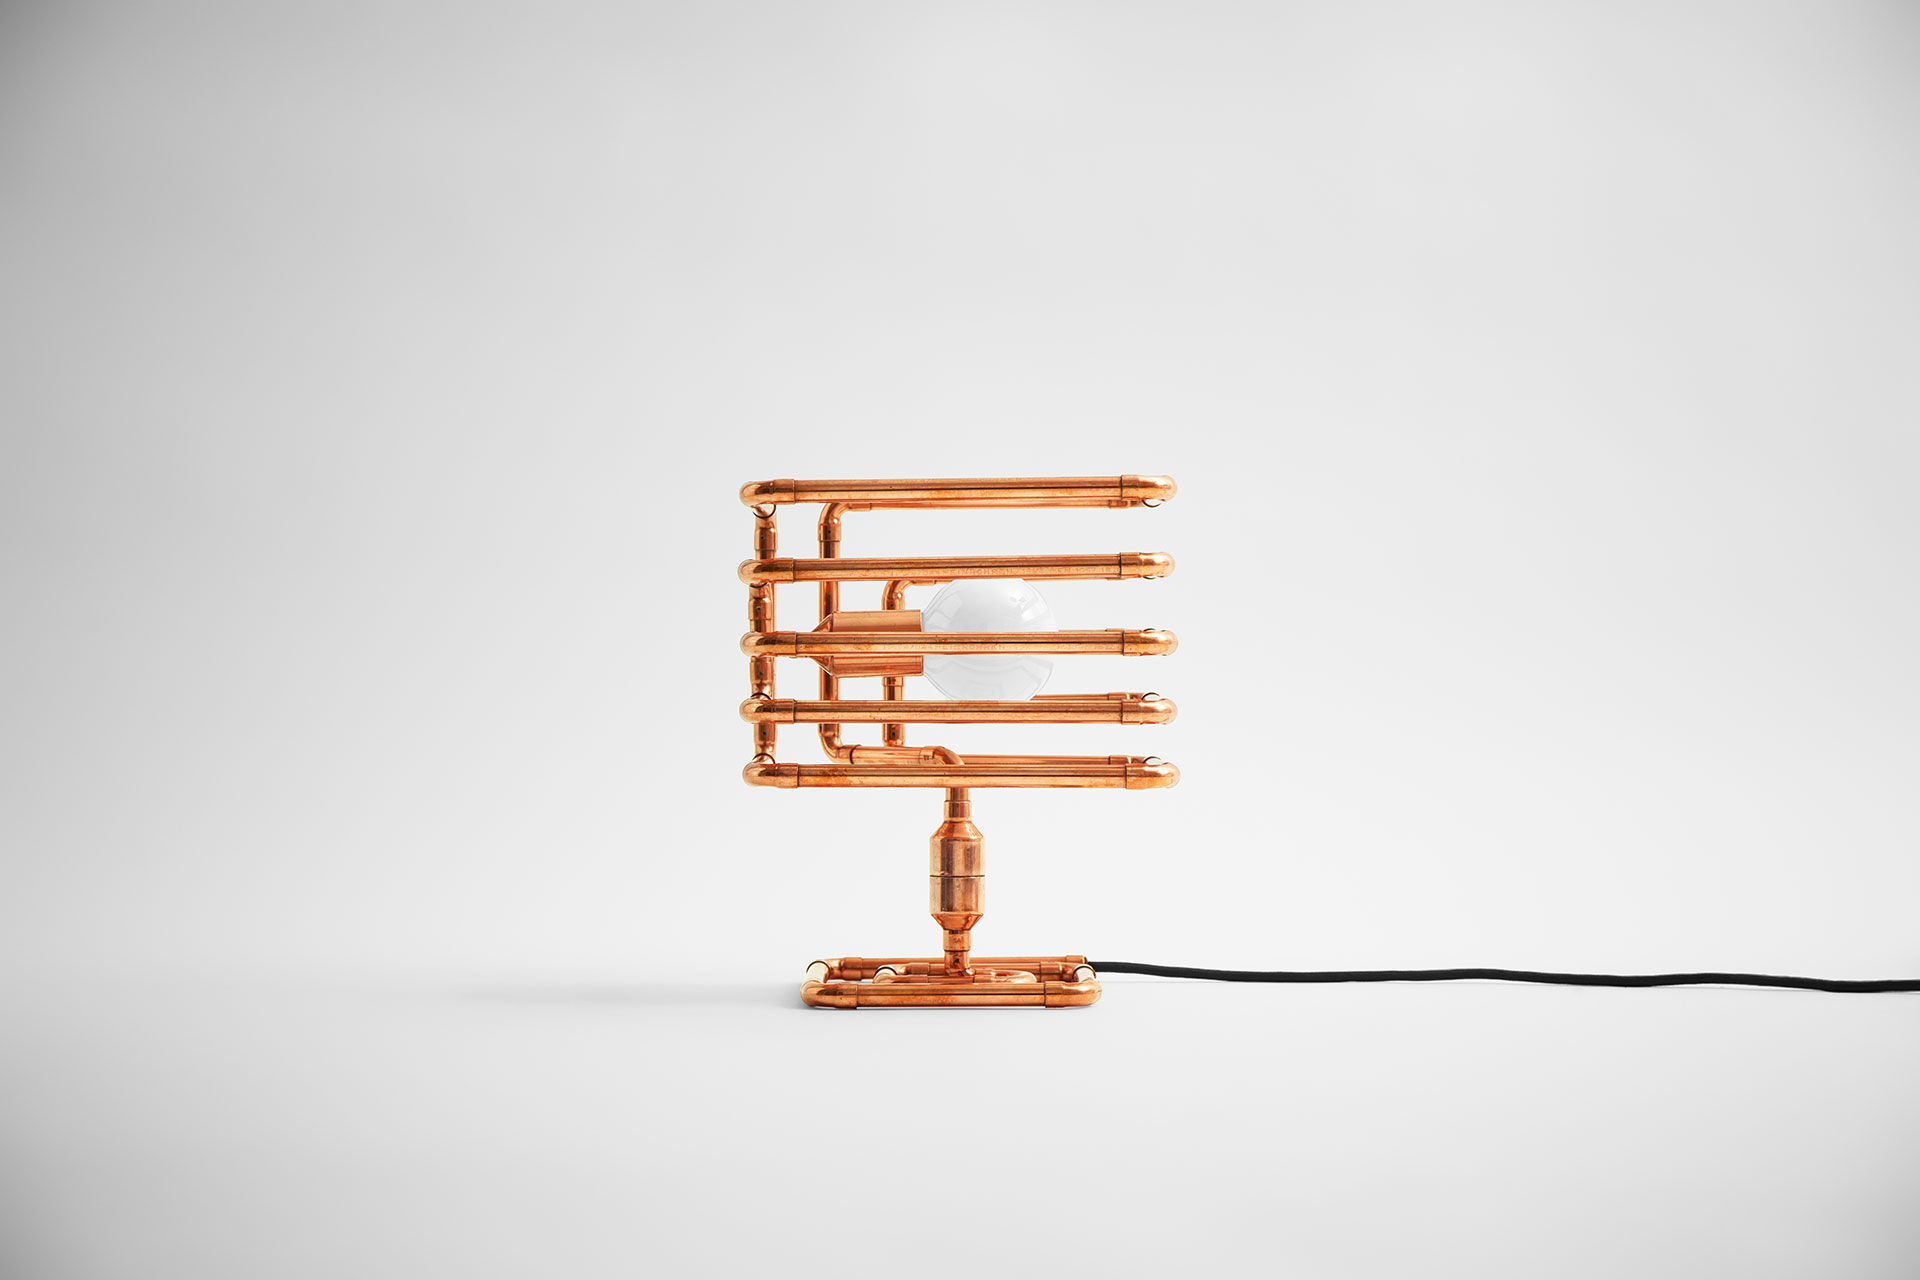 Unusual table lamp in trendy copper metal finish inspired by industrial design